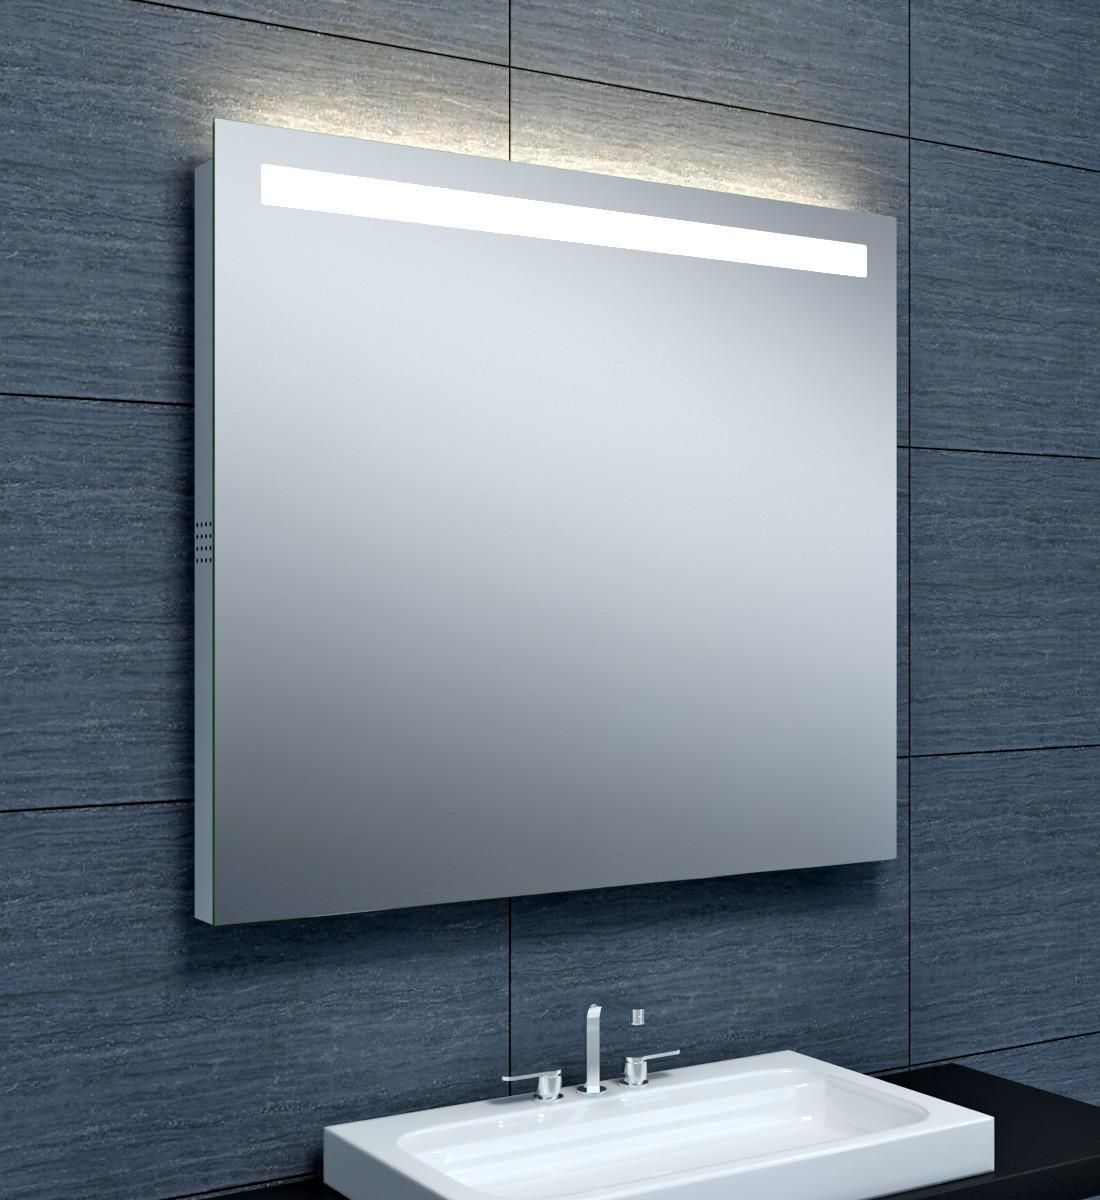 Alterna miroir musik clairage led bluetooth 90 x hauteur 80 cm cedeo for Miroir 50 x 90